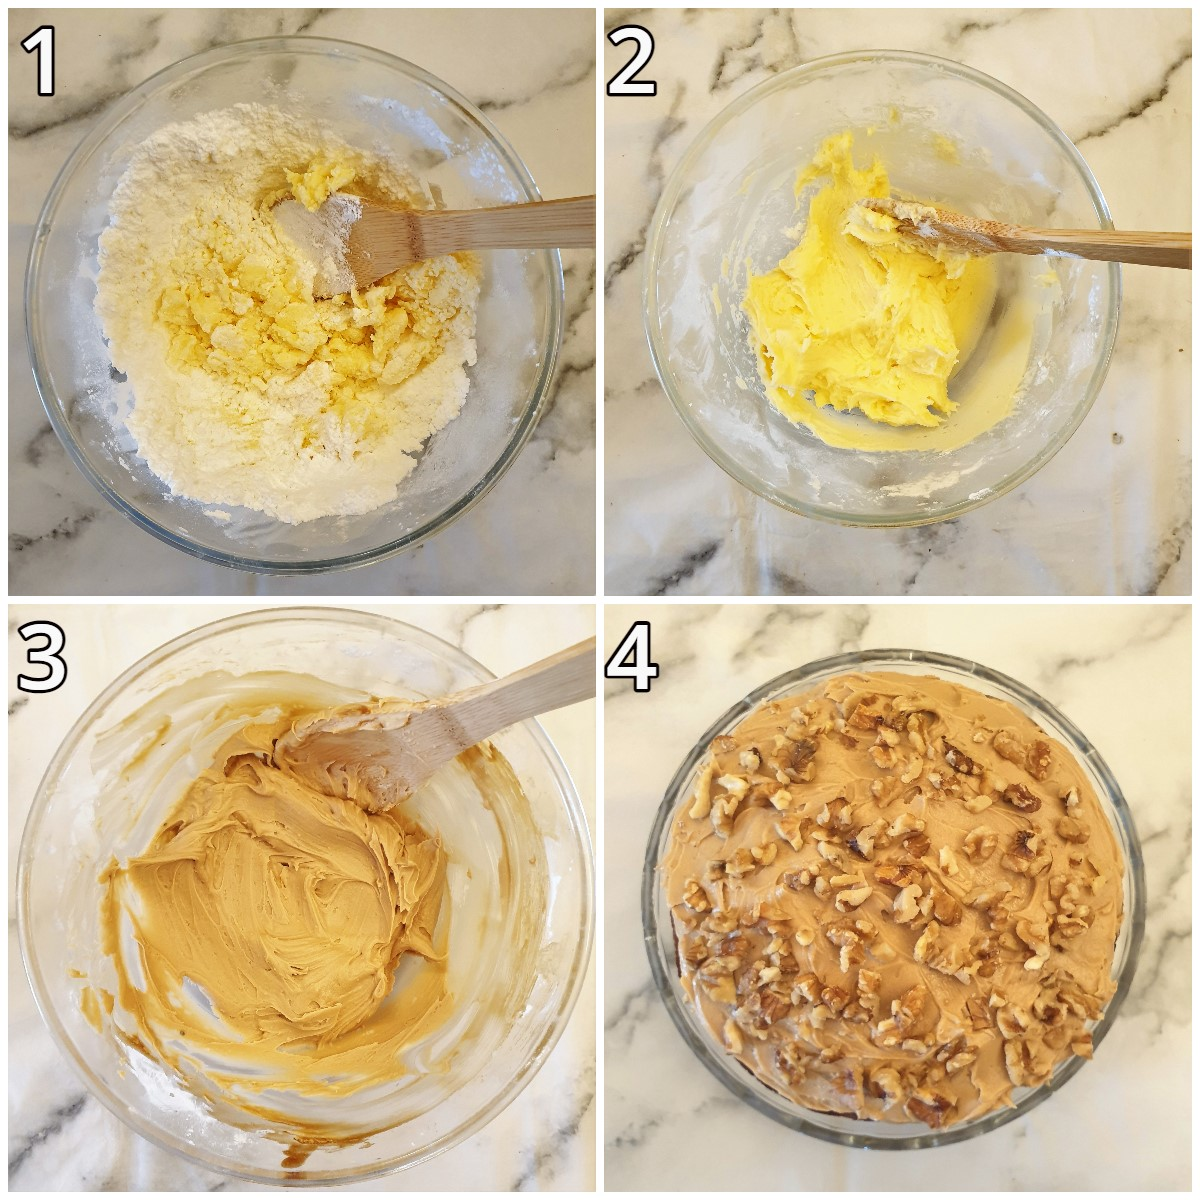 Steps for making the coffee buttercream.